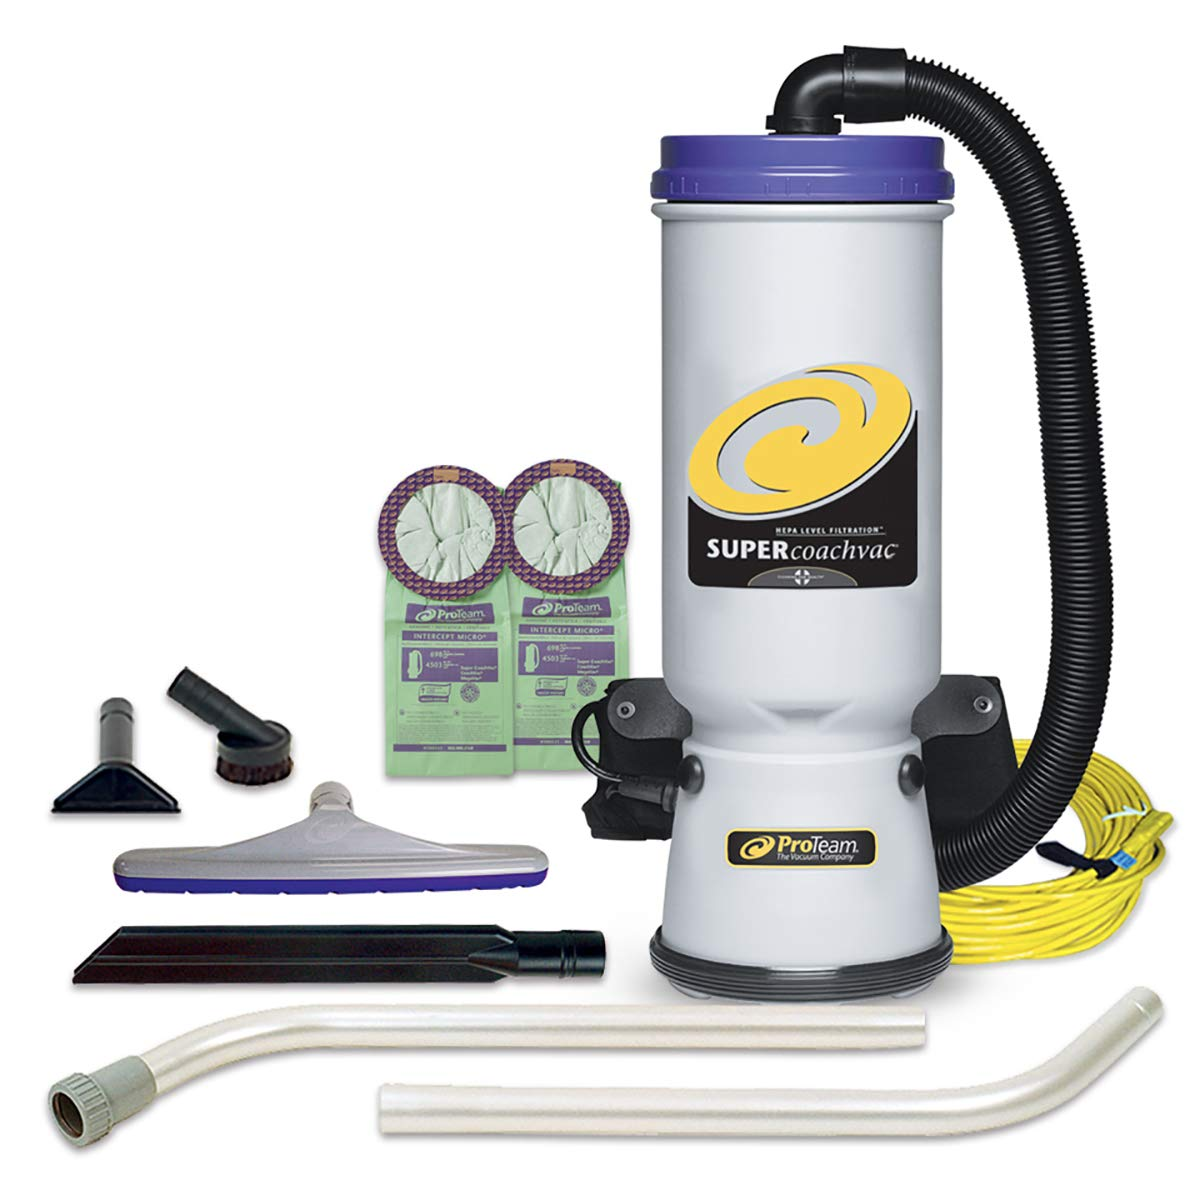 ProTeam Commercial Backpack Vacuum, Super CoachVac Vacuum Backpack with HEPA Media Filtration and Xover Multi